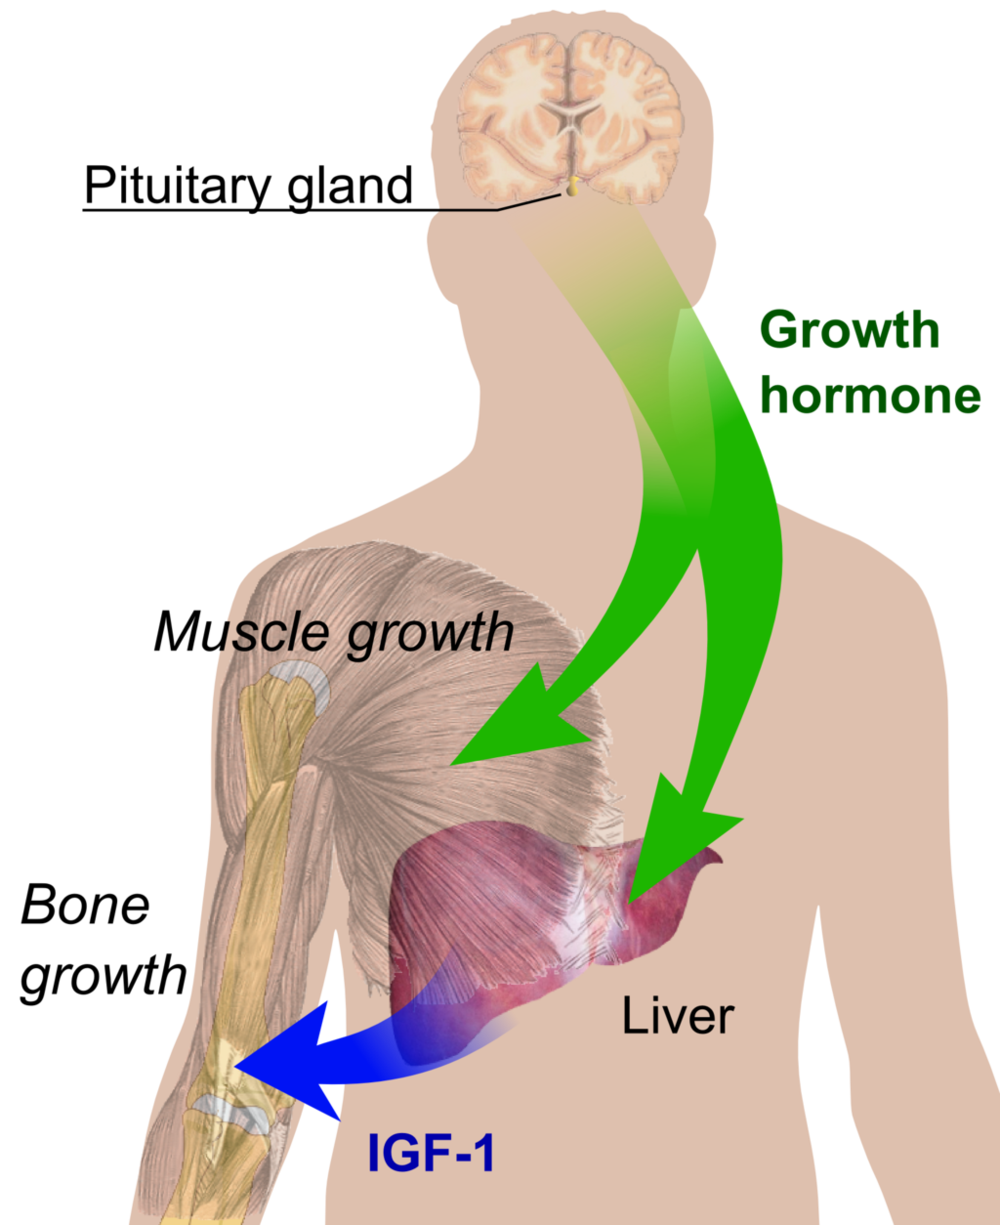 1024px-Endocrine_growth_regulation.png